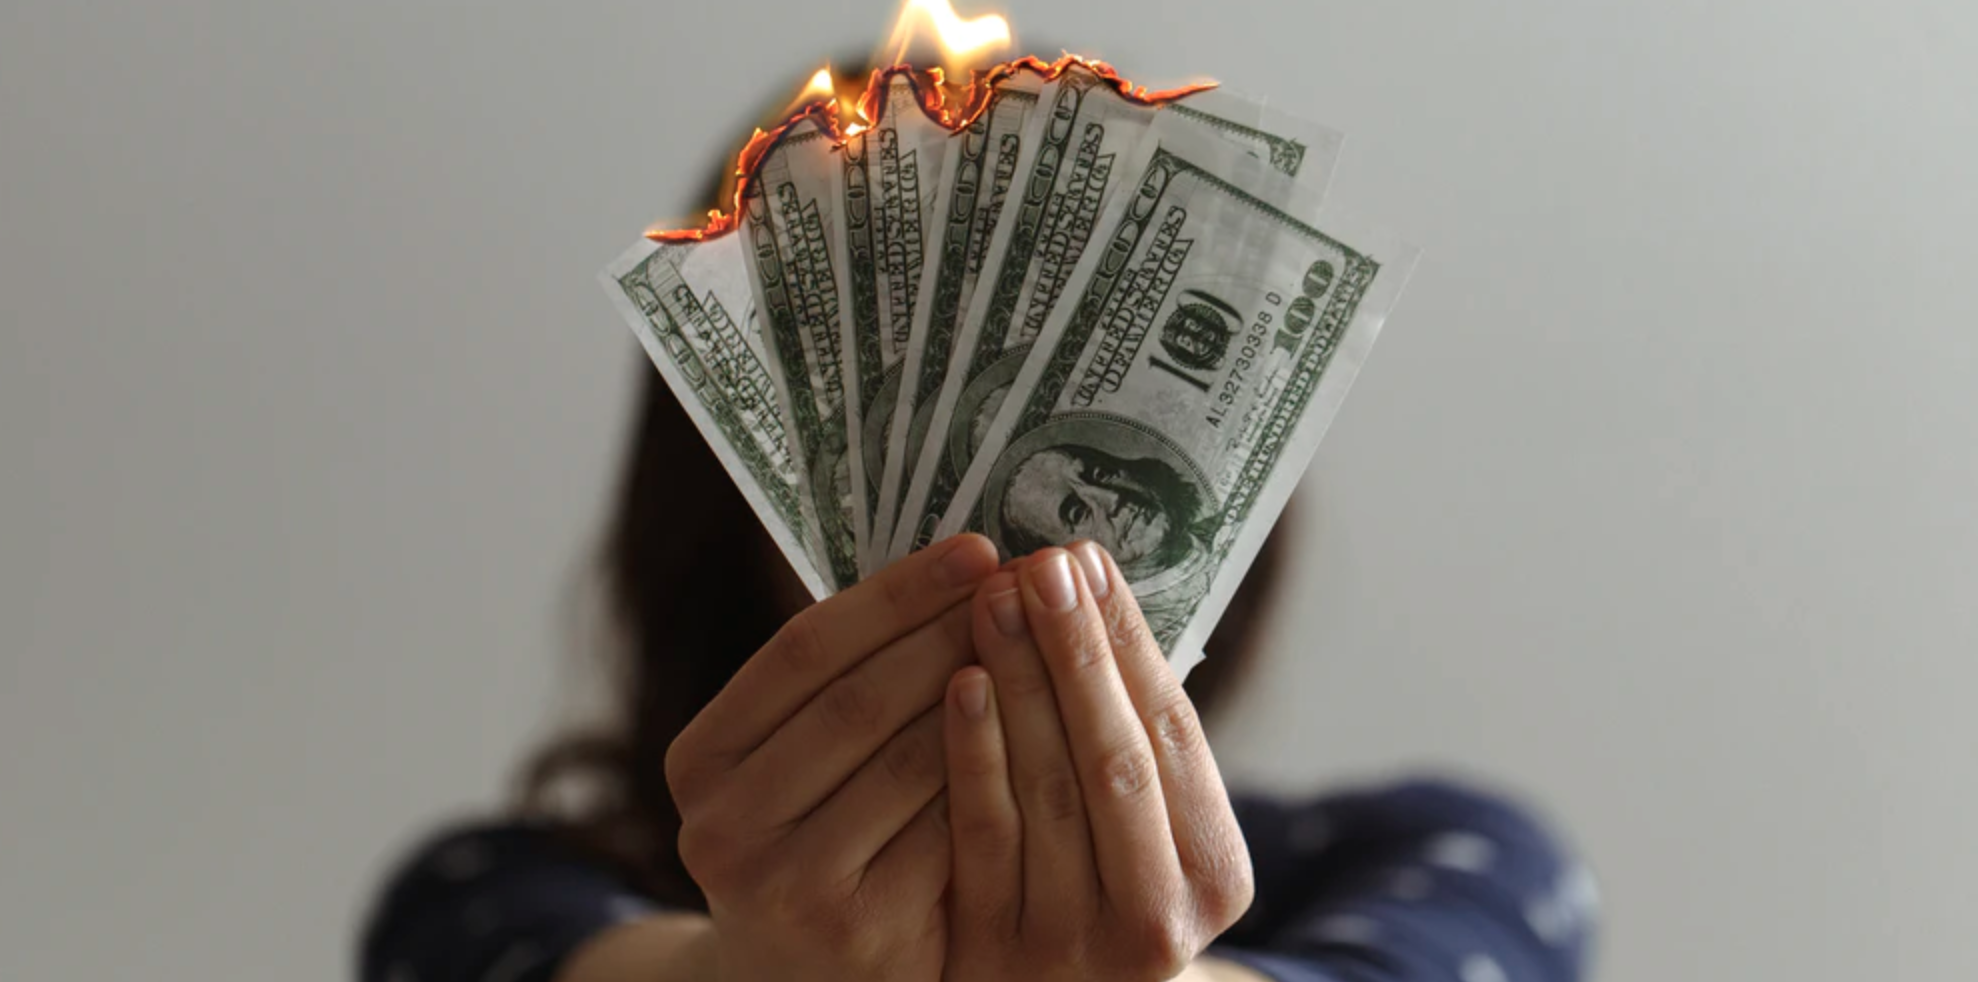 TOP 7 Mistakes That Cost Your Deposit - 2021 Update